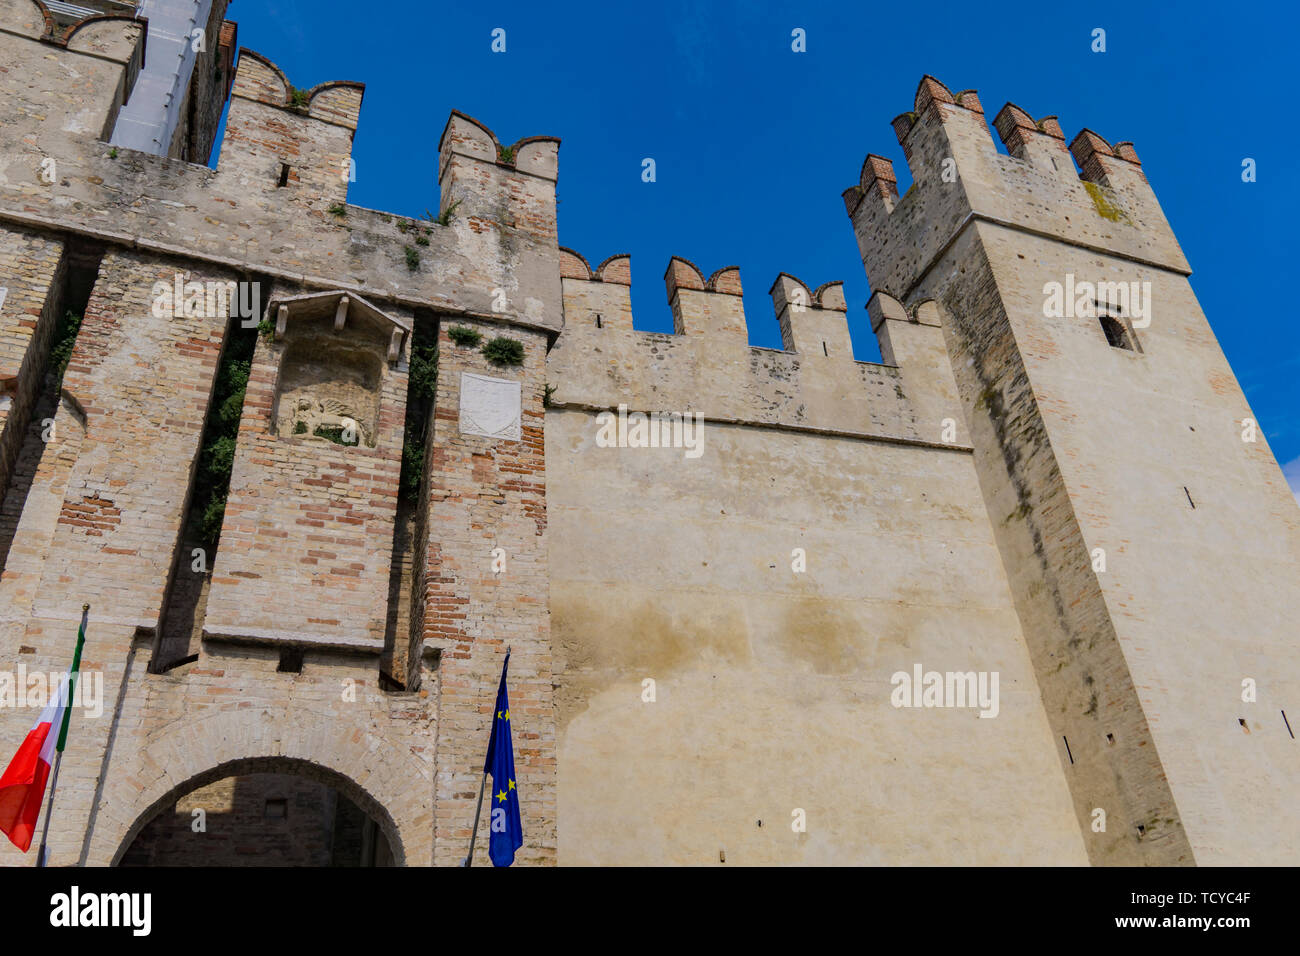 Detail of Castello Scaligero Di Sirmione (Sirmione Castle), from 14th  Century at Lake Garda, Sirmione, Italy - Stock Image